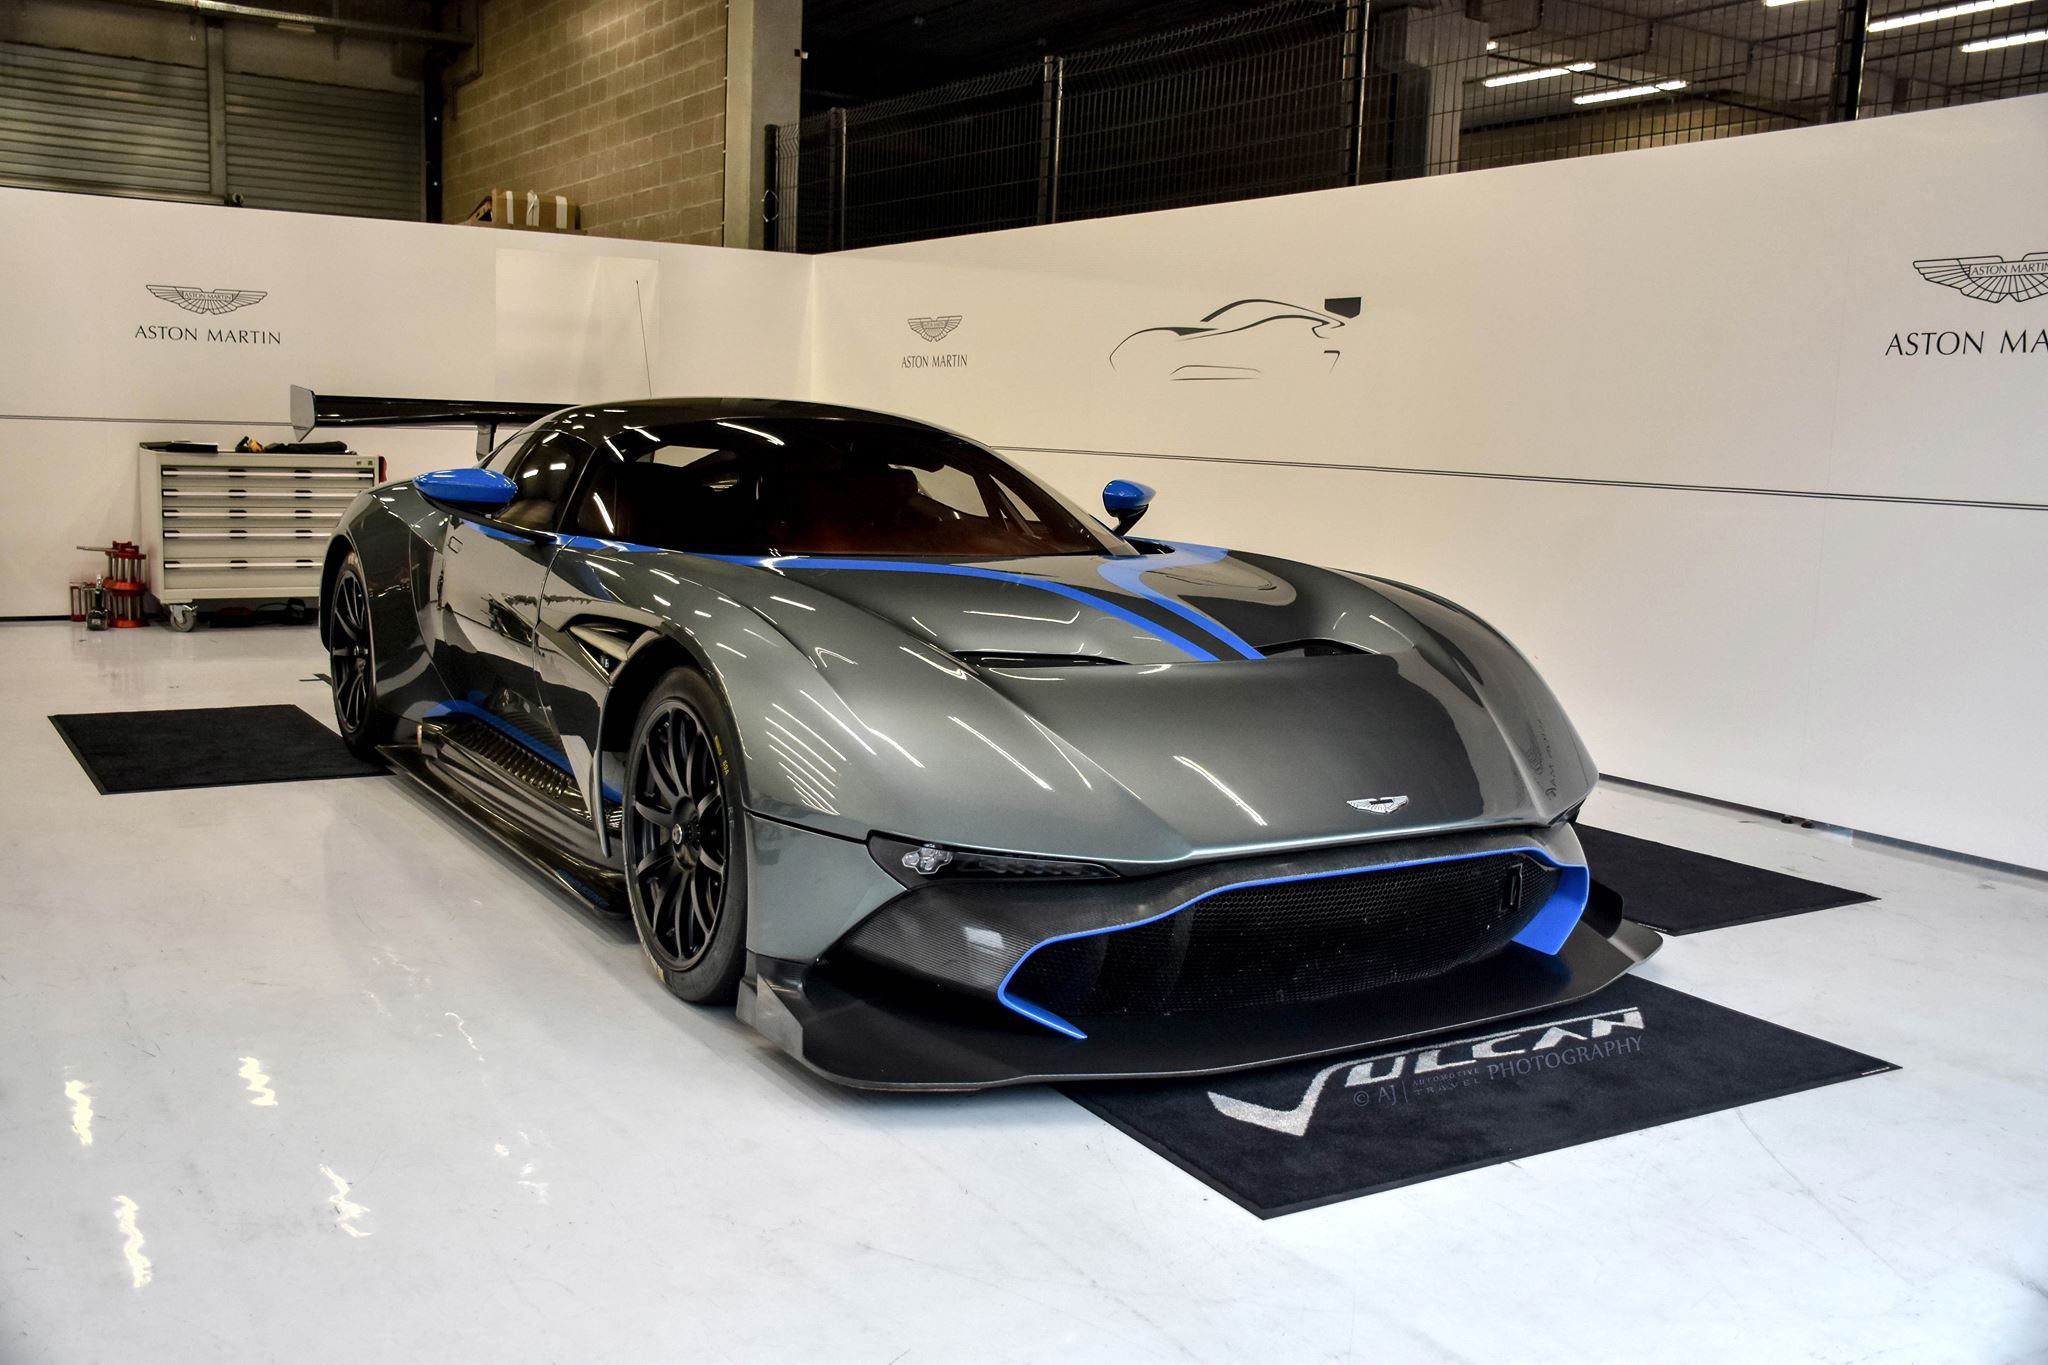 Gallery: Aston Martin Vulcan Attack At Spa-Francorchamps